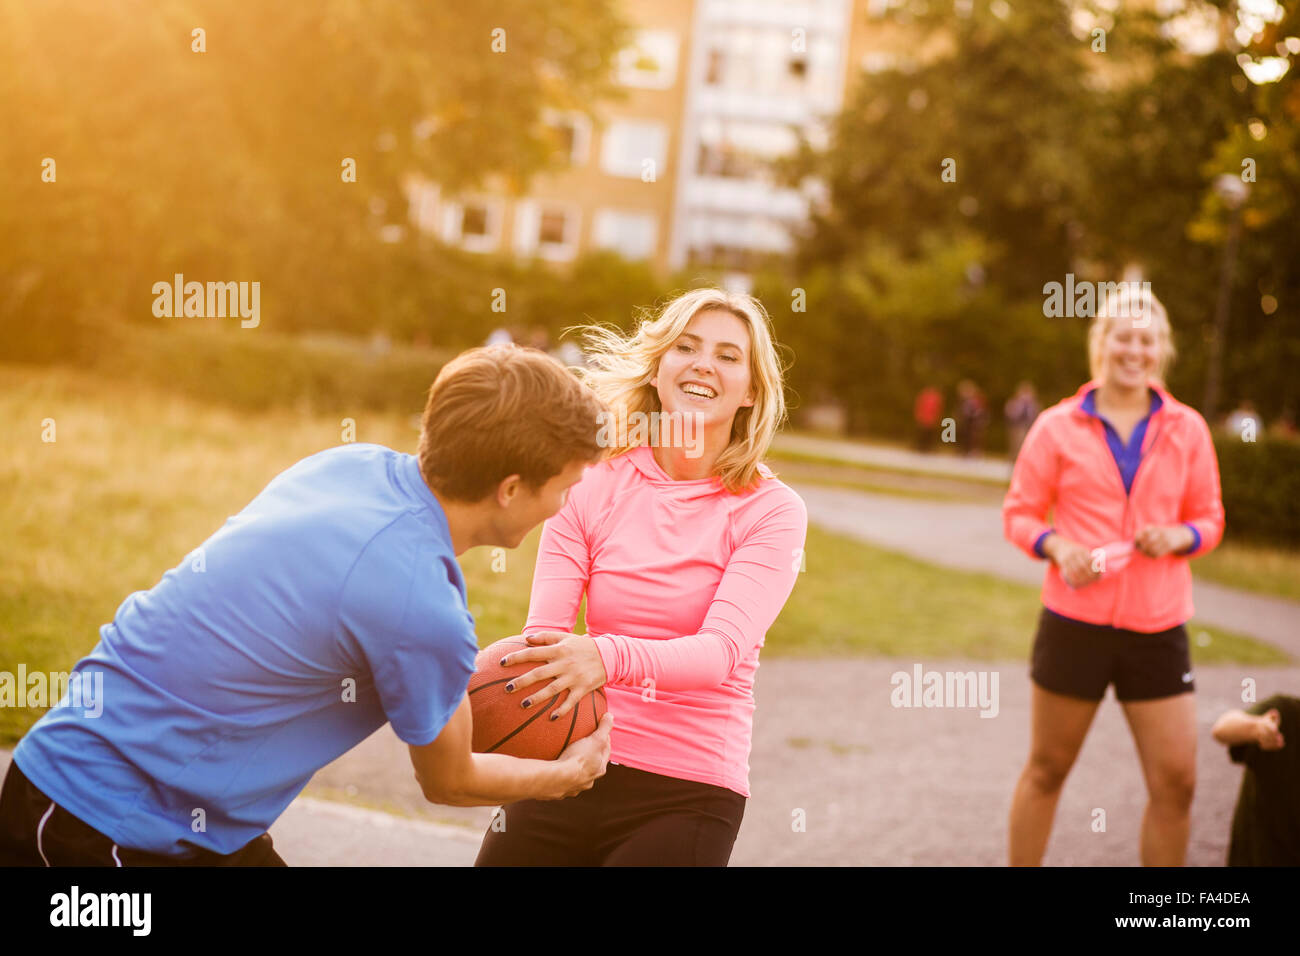 Happy man and woman snatching basketball at park - Stock Image